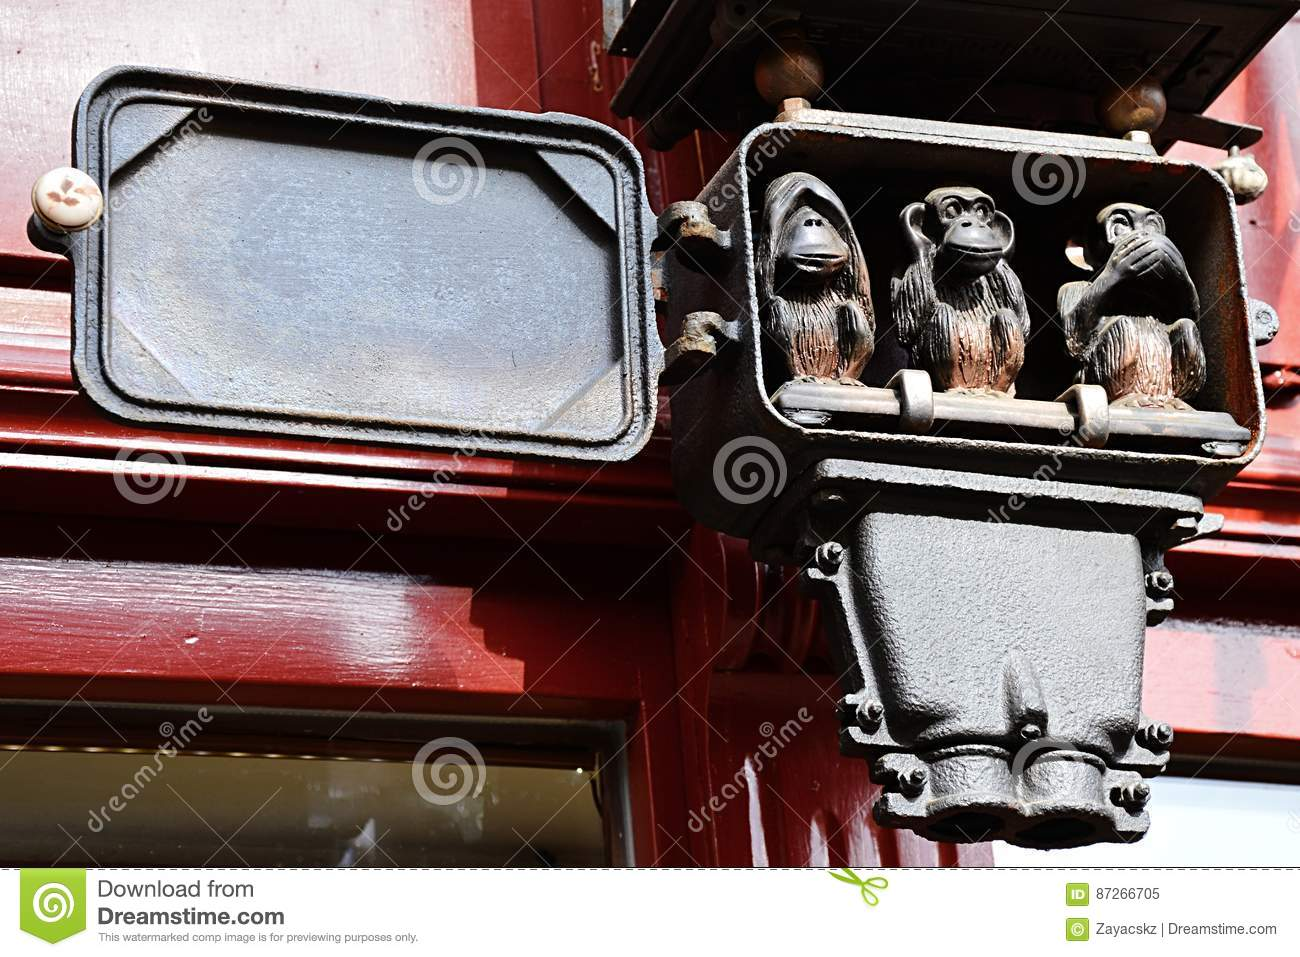 hight resolution of three wise monkeys small sculptural group placed in antique electric clock fuse box